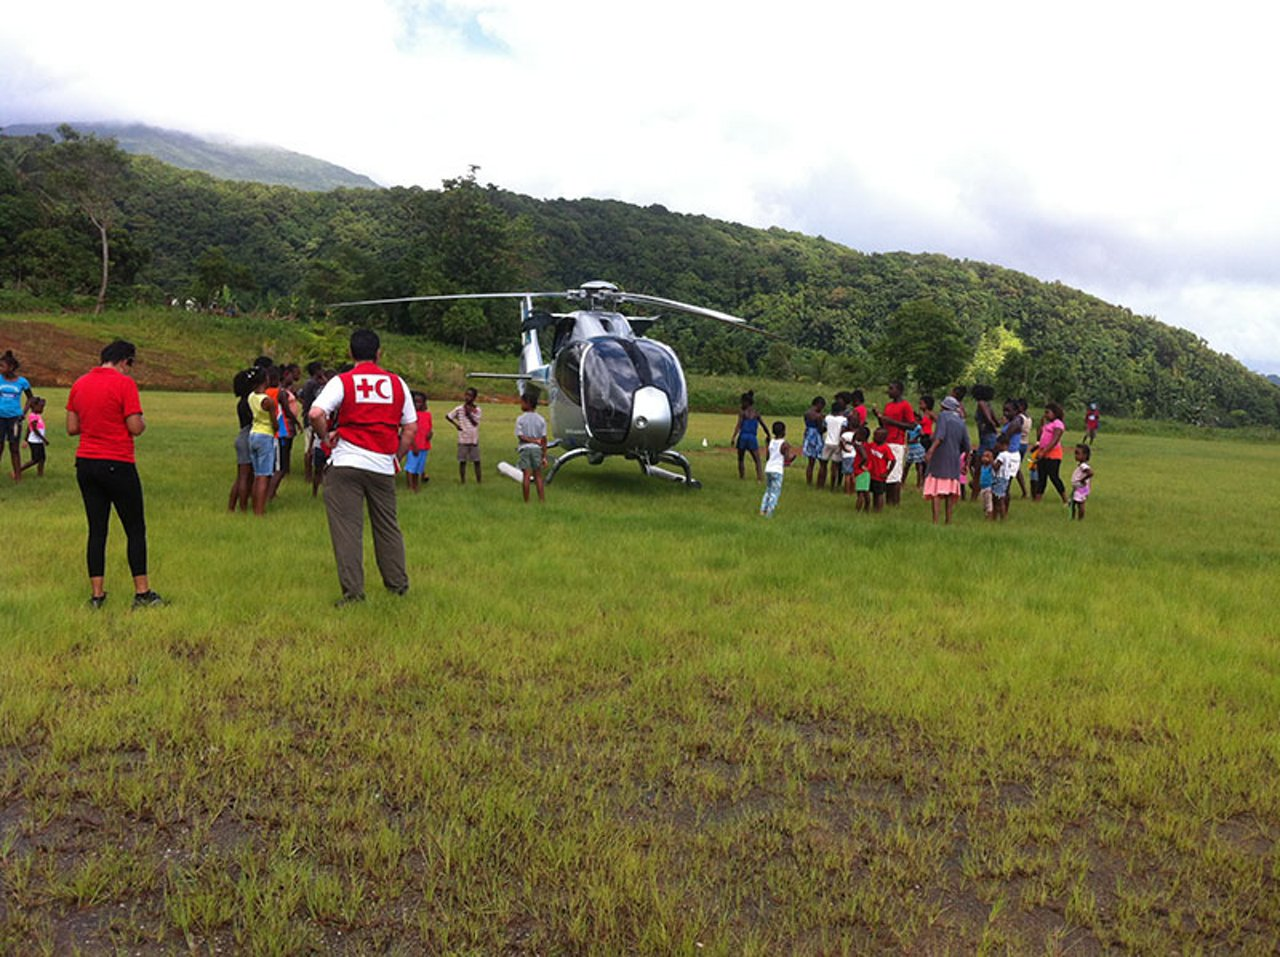 The Airbus Helicopters Foundation supports the Red Cross' efforts to provide aid in Dominica